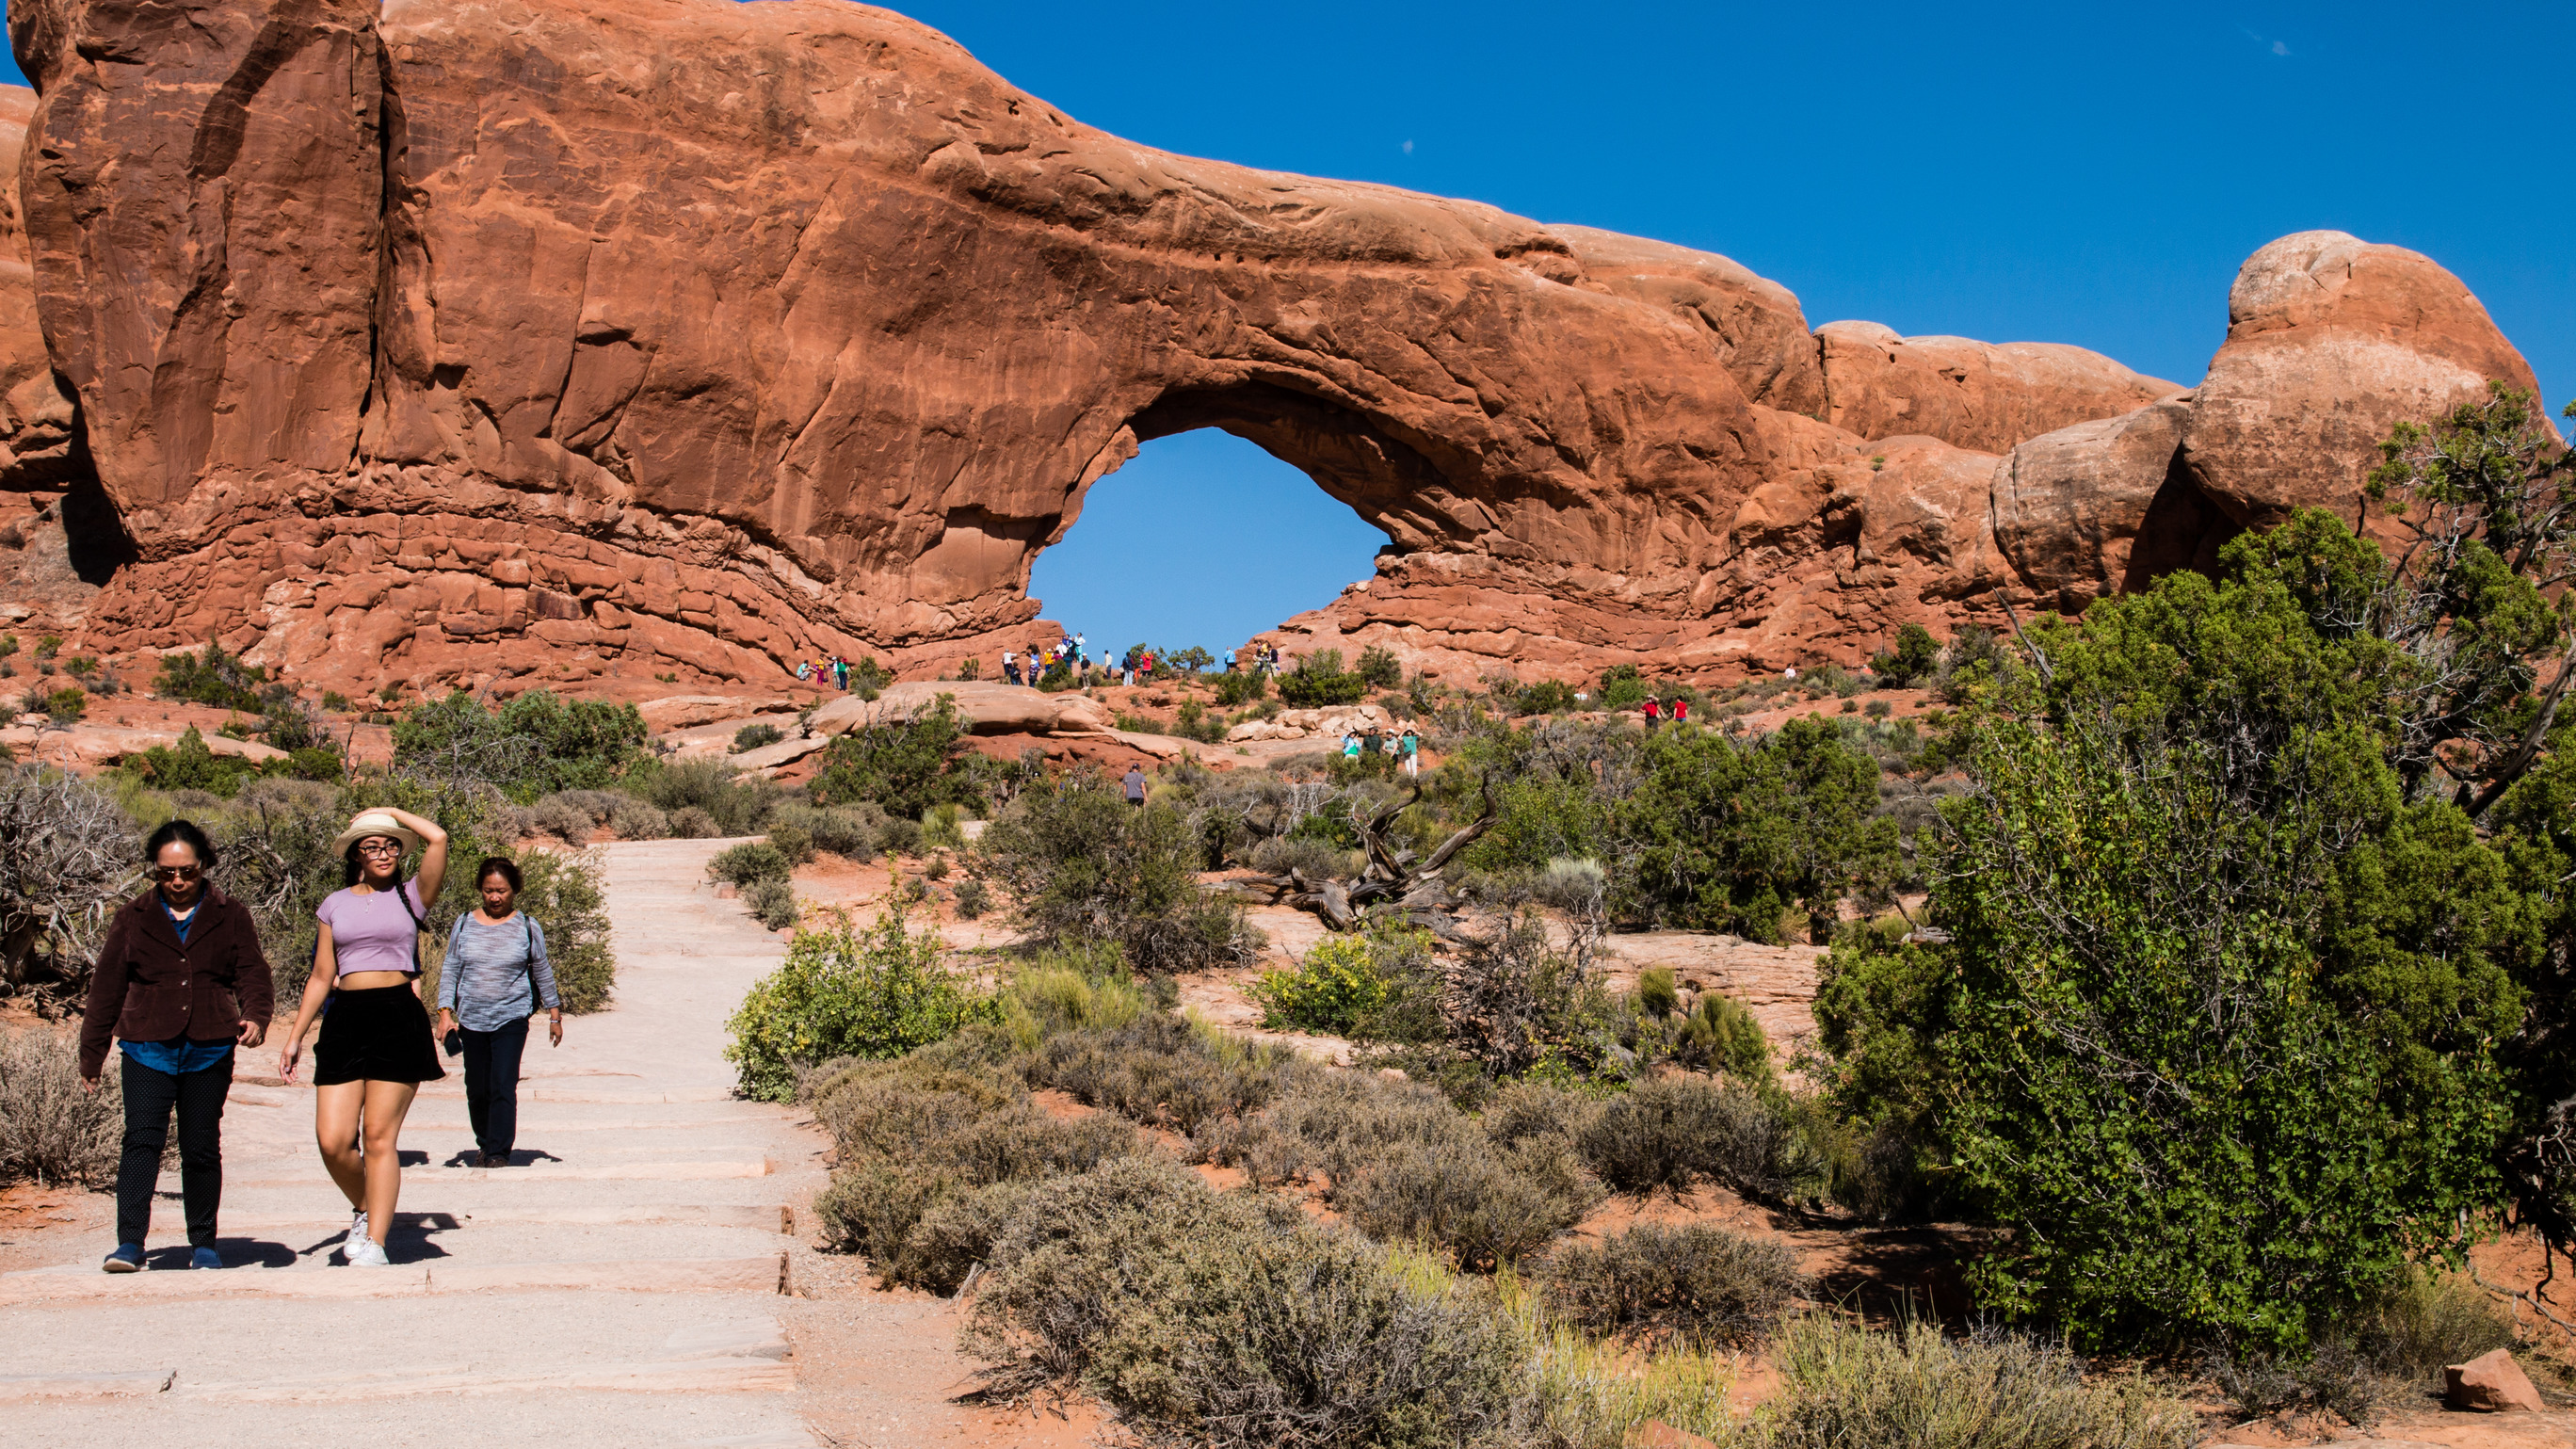 Visitors walk along a paved pathway at Arches National Park. Photo by M. Reed, NPS.